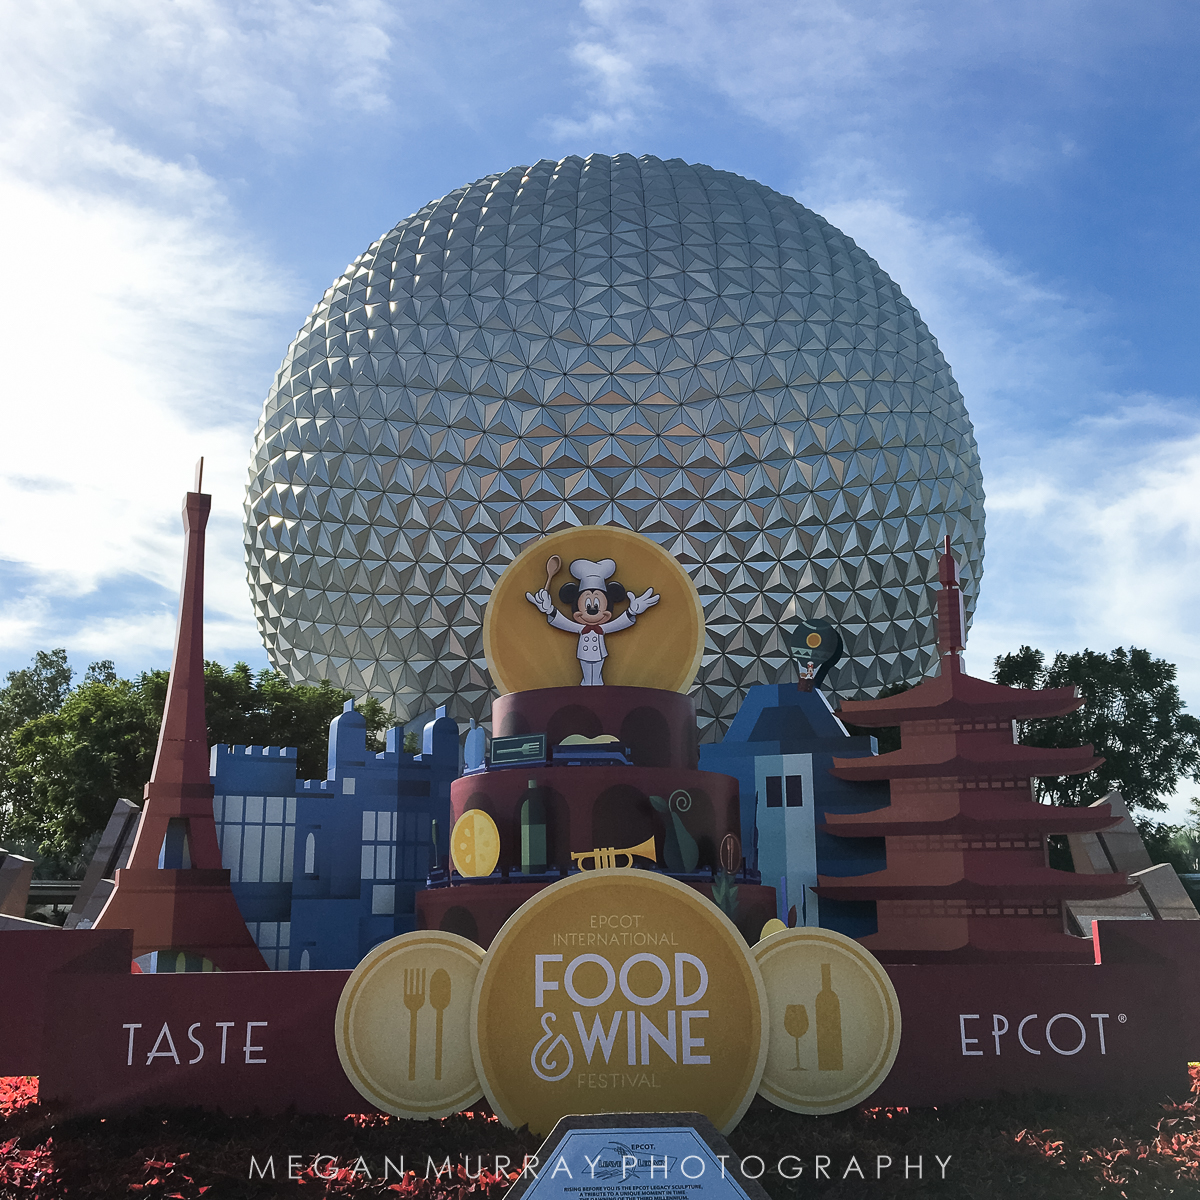 why we came: Food and Wine Festival at Epcot